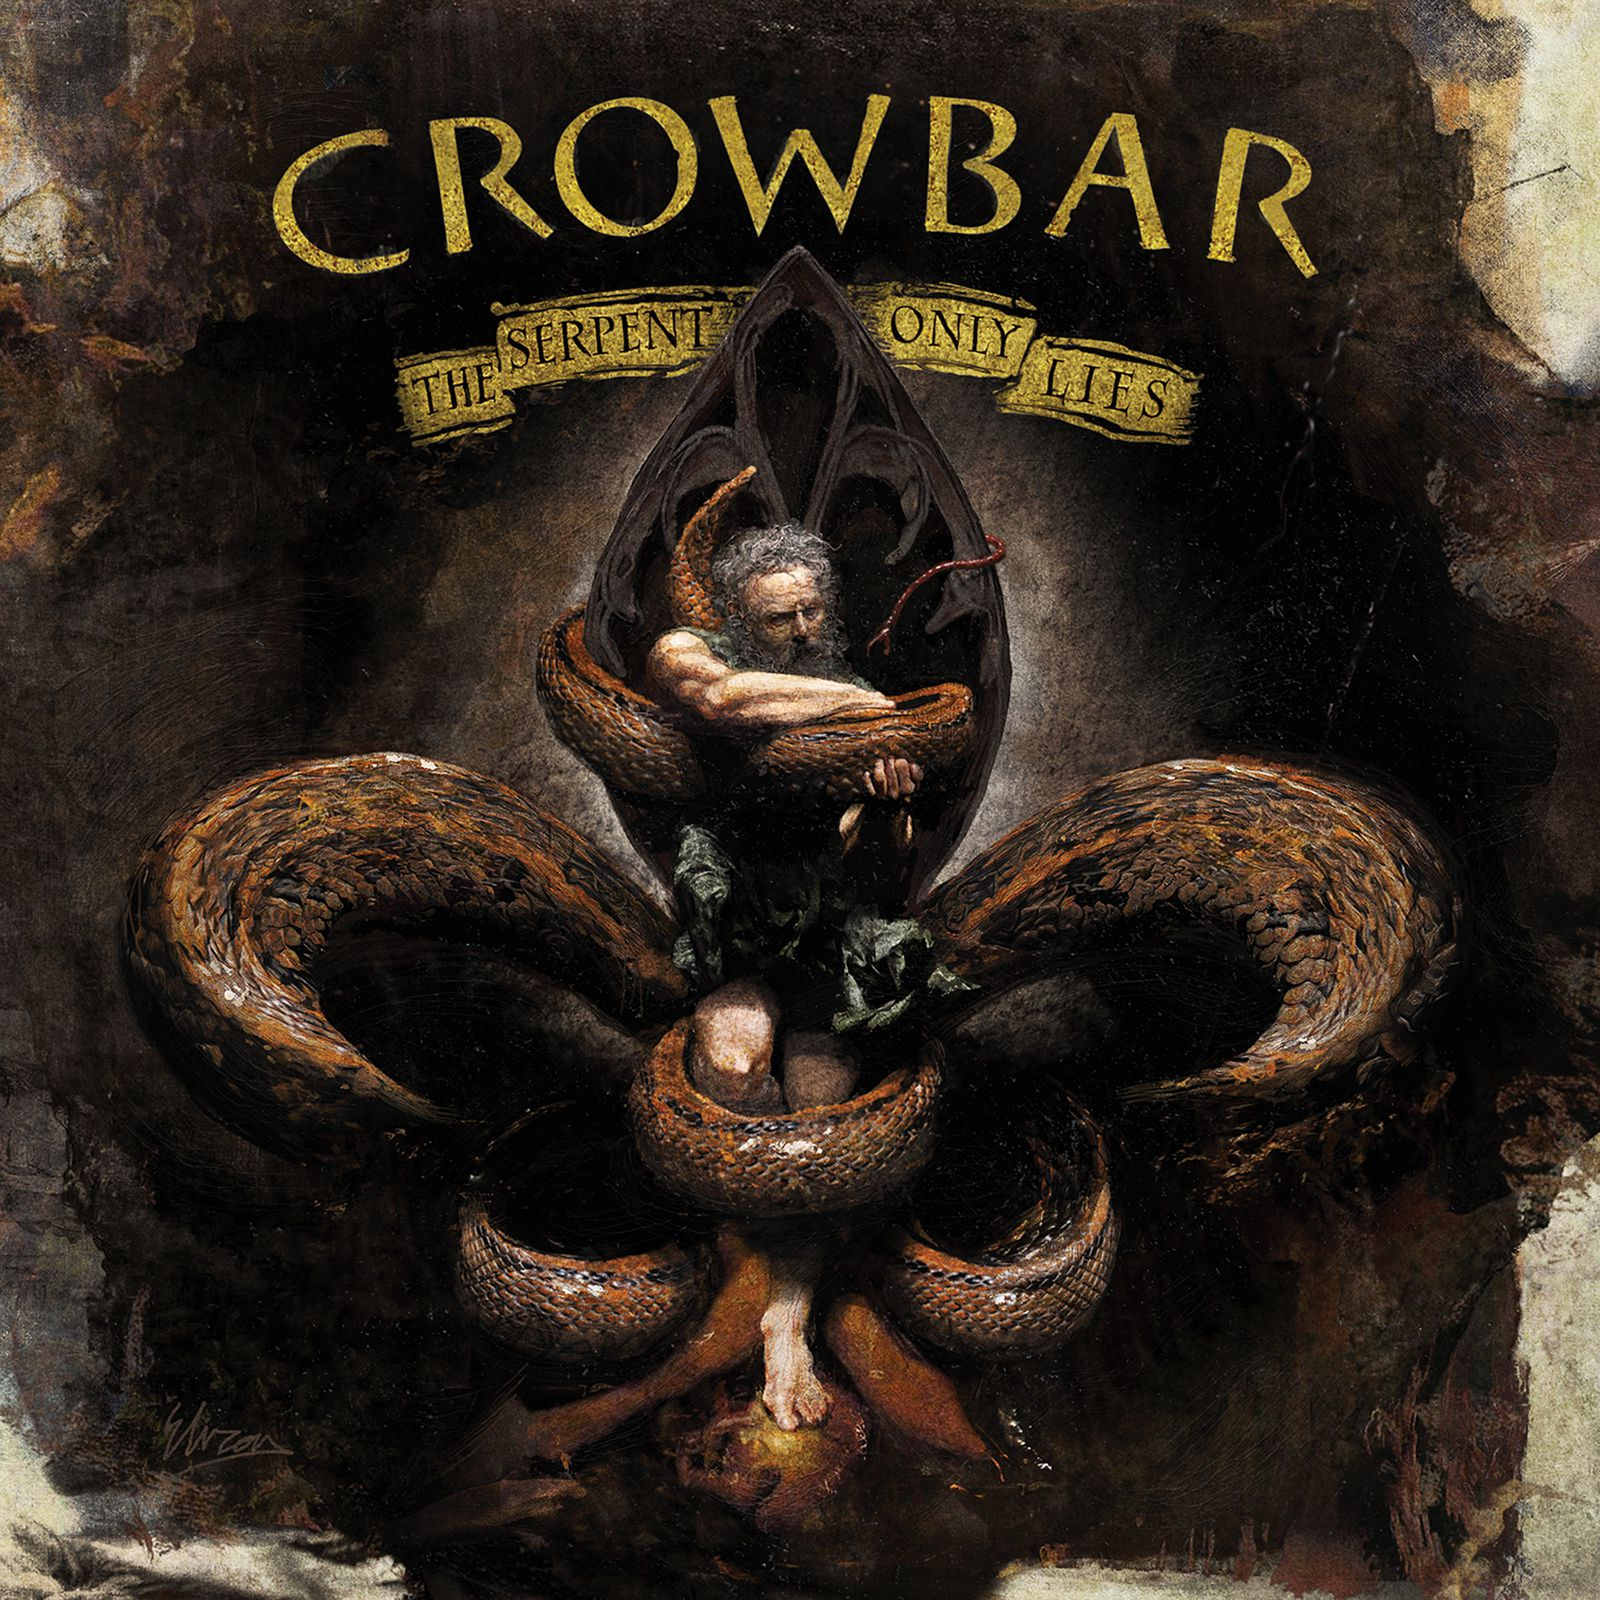 CD review CROWBAR &quot&#x3B;The Serpent only Lies&quot&#x3B;